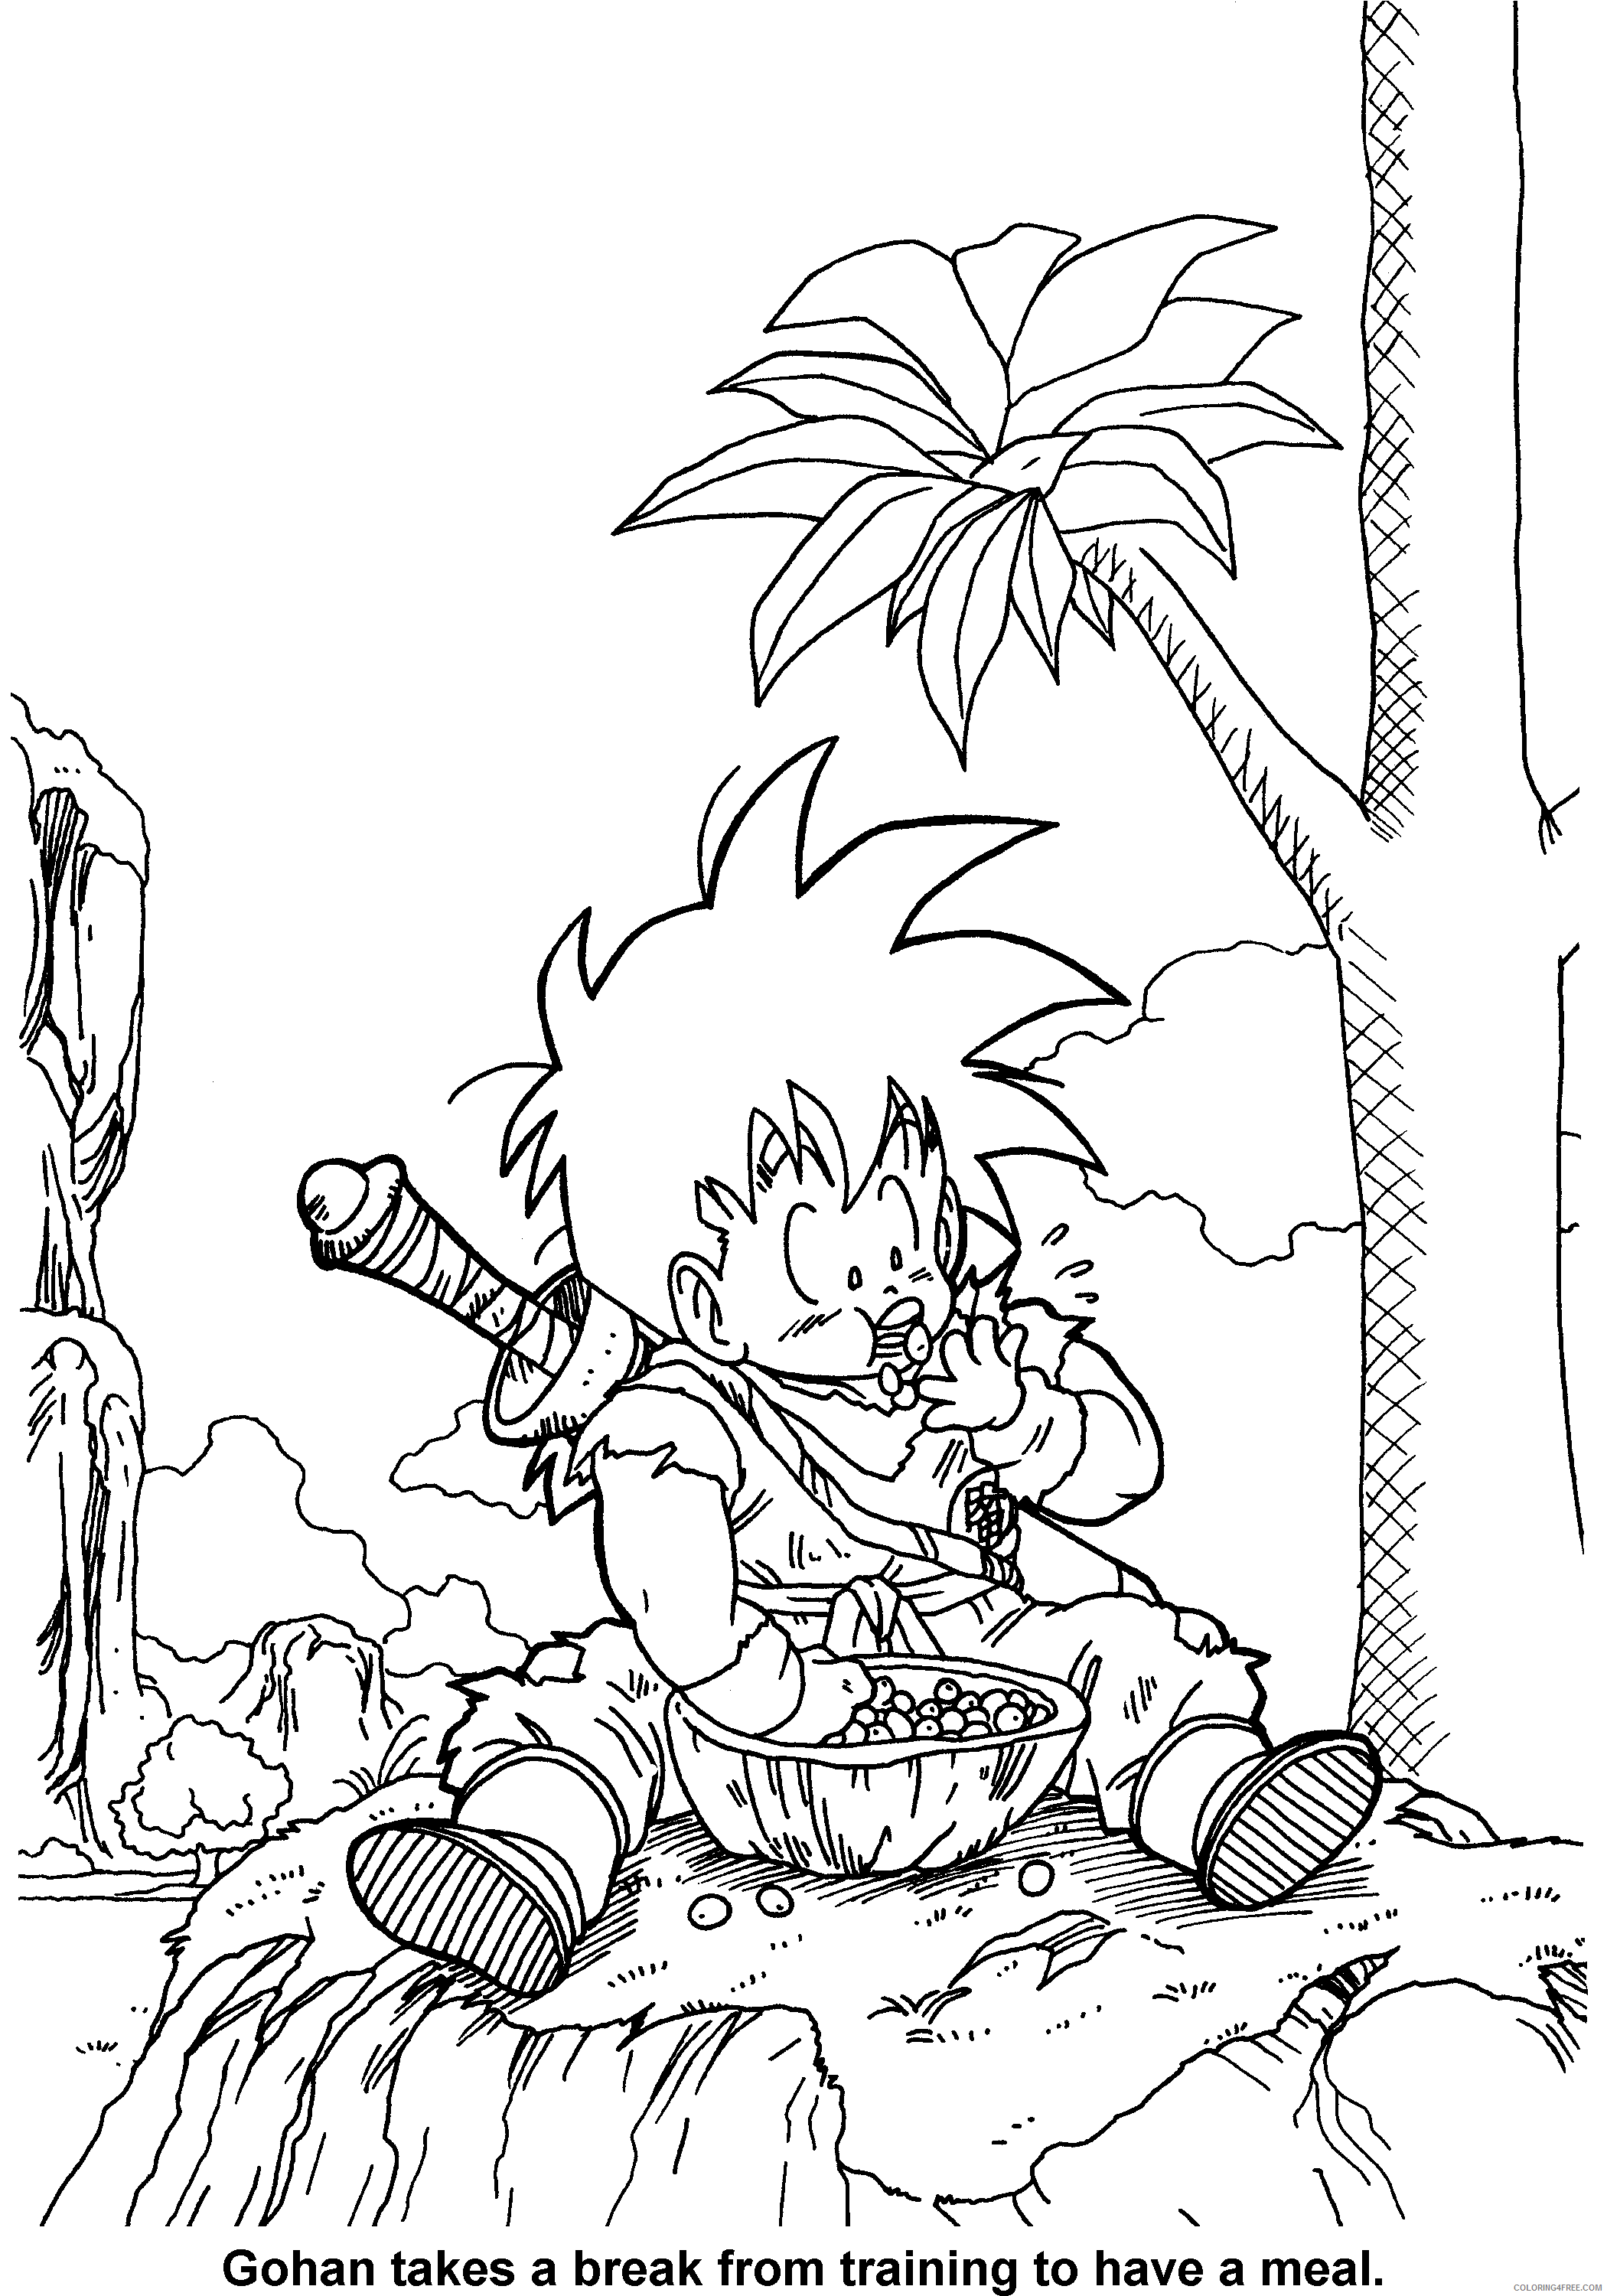 070 dragon ball z gohan takes a break from training to have a meal Printable Coloring4free